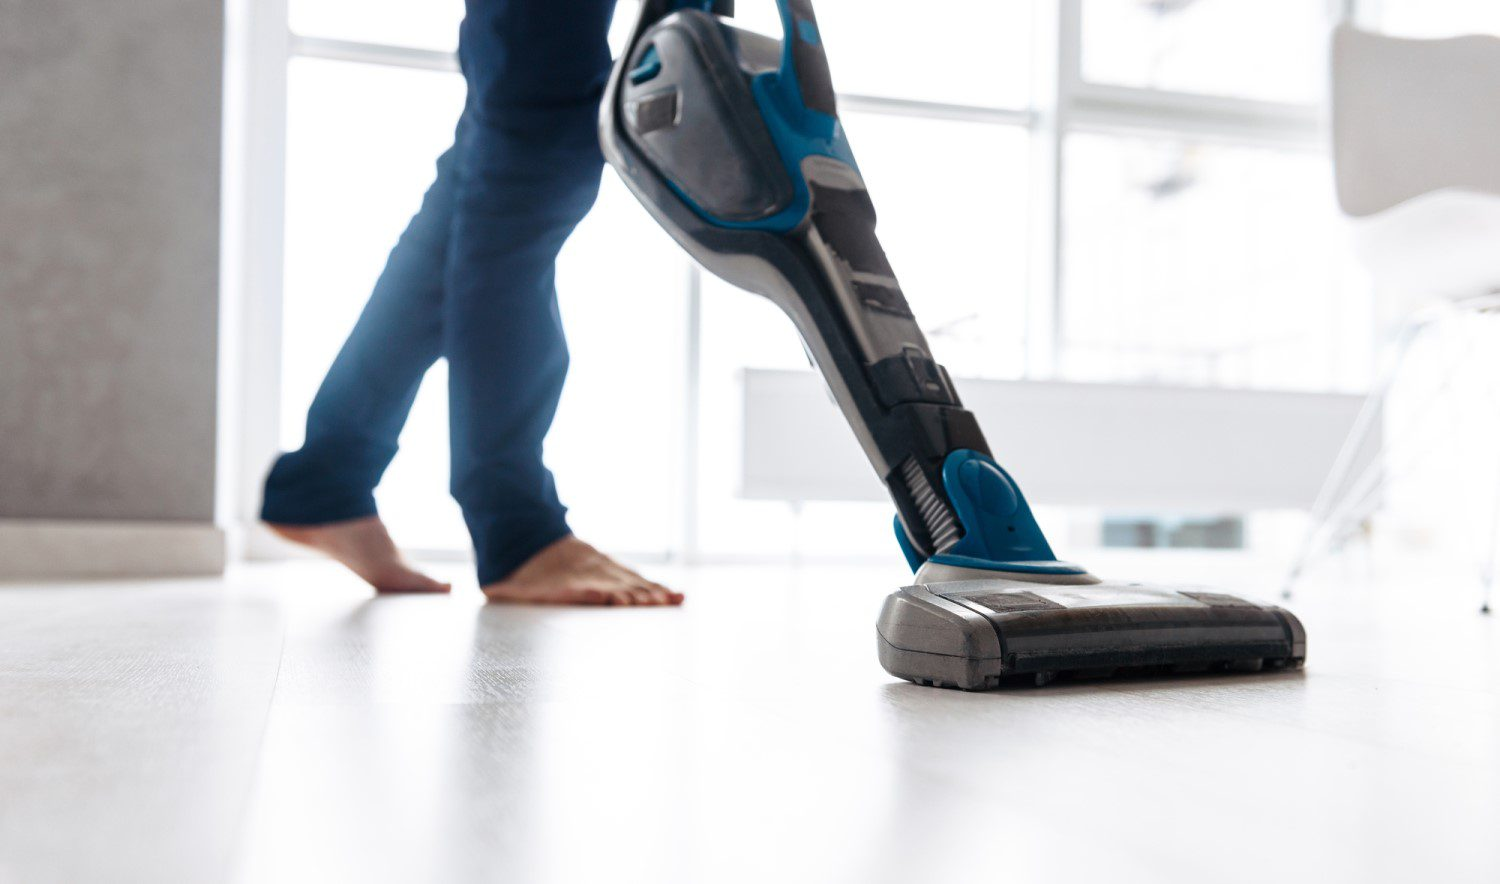 Person using a stick vacuum on a floor